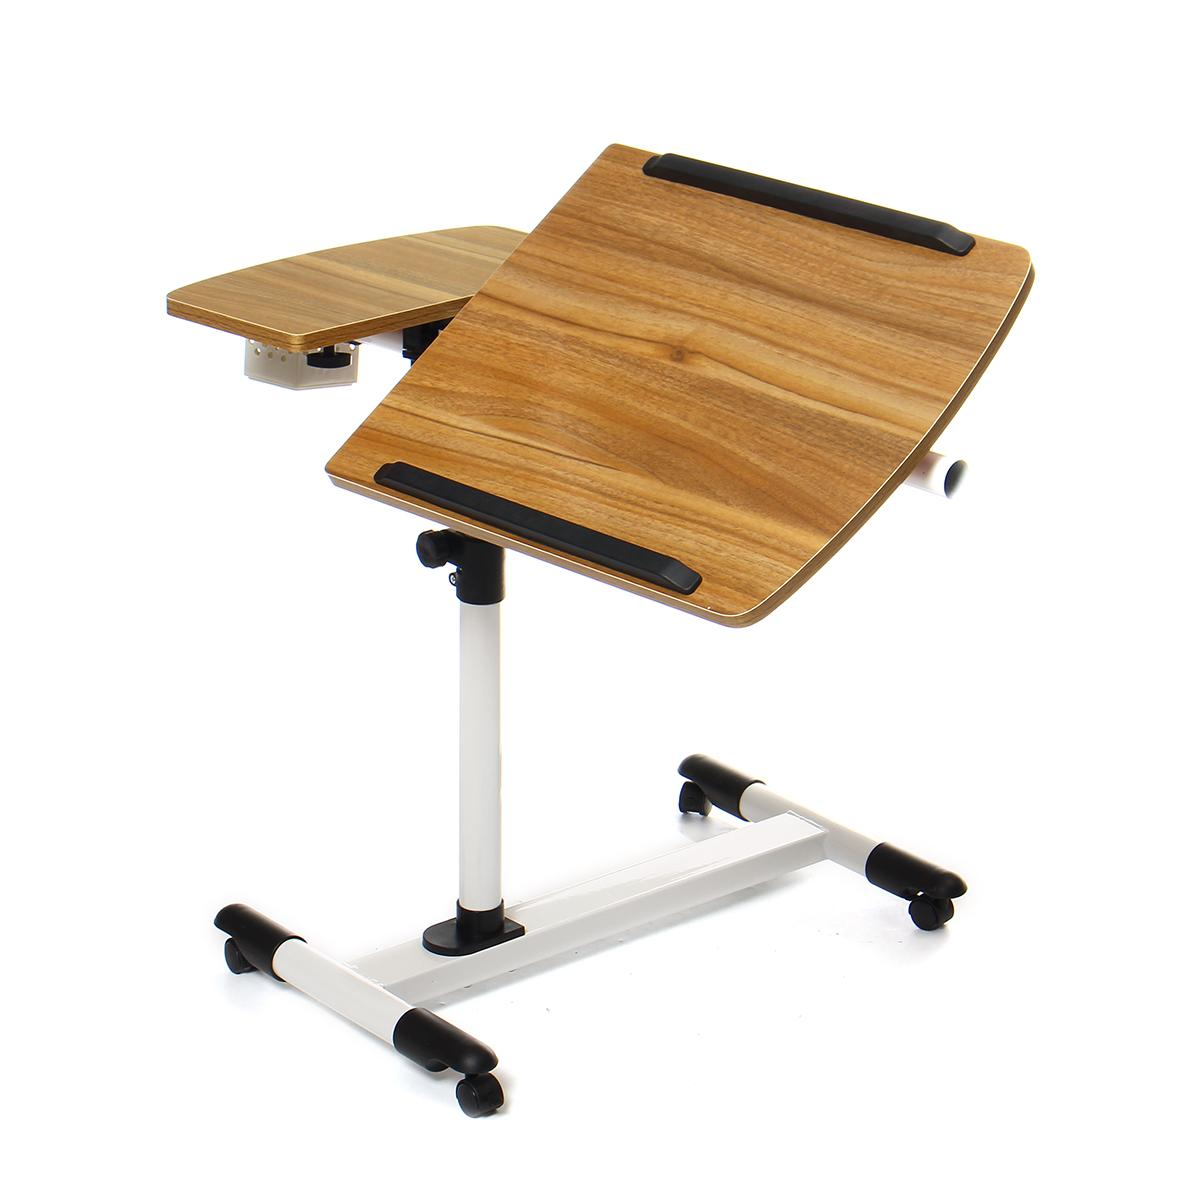 Ancient Oak Adjustable Portable Laptop Desk Rotatable Laptop Desk Foldable Computer Desk Liftable Standing Desk 68 * 40CM